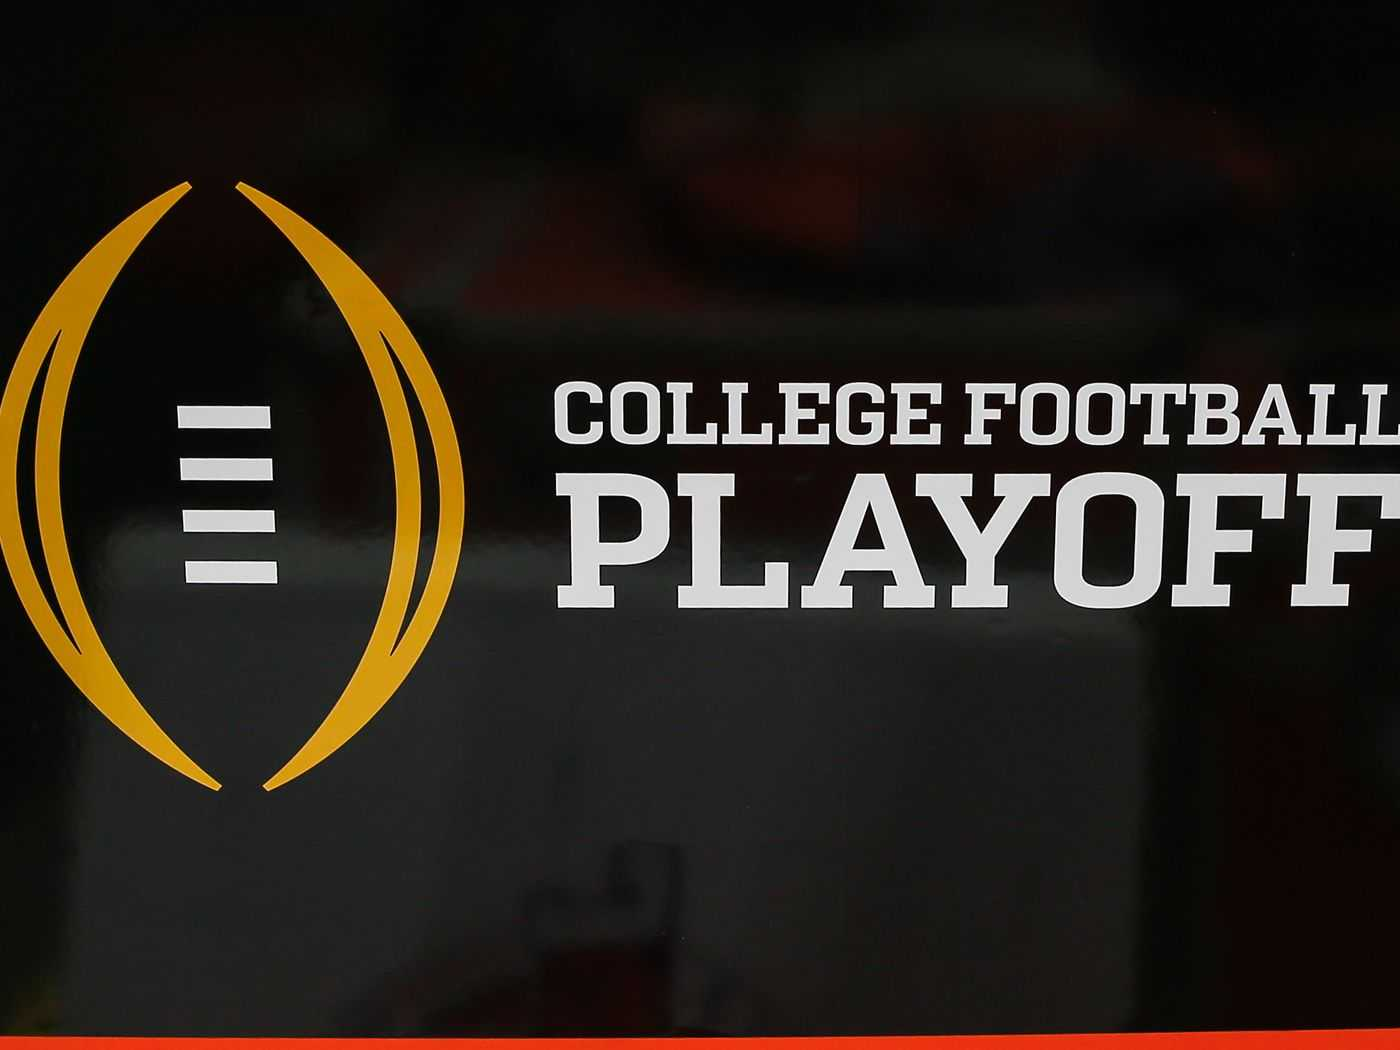 How to Expand the College Football Playoff